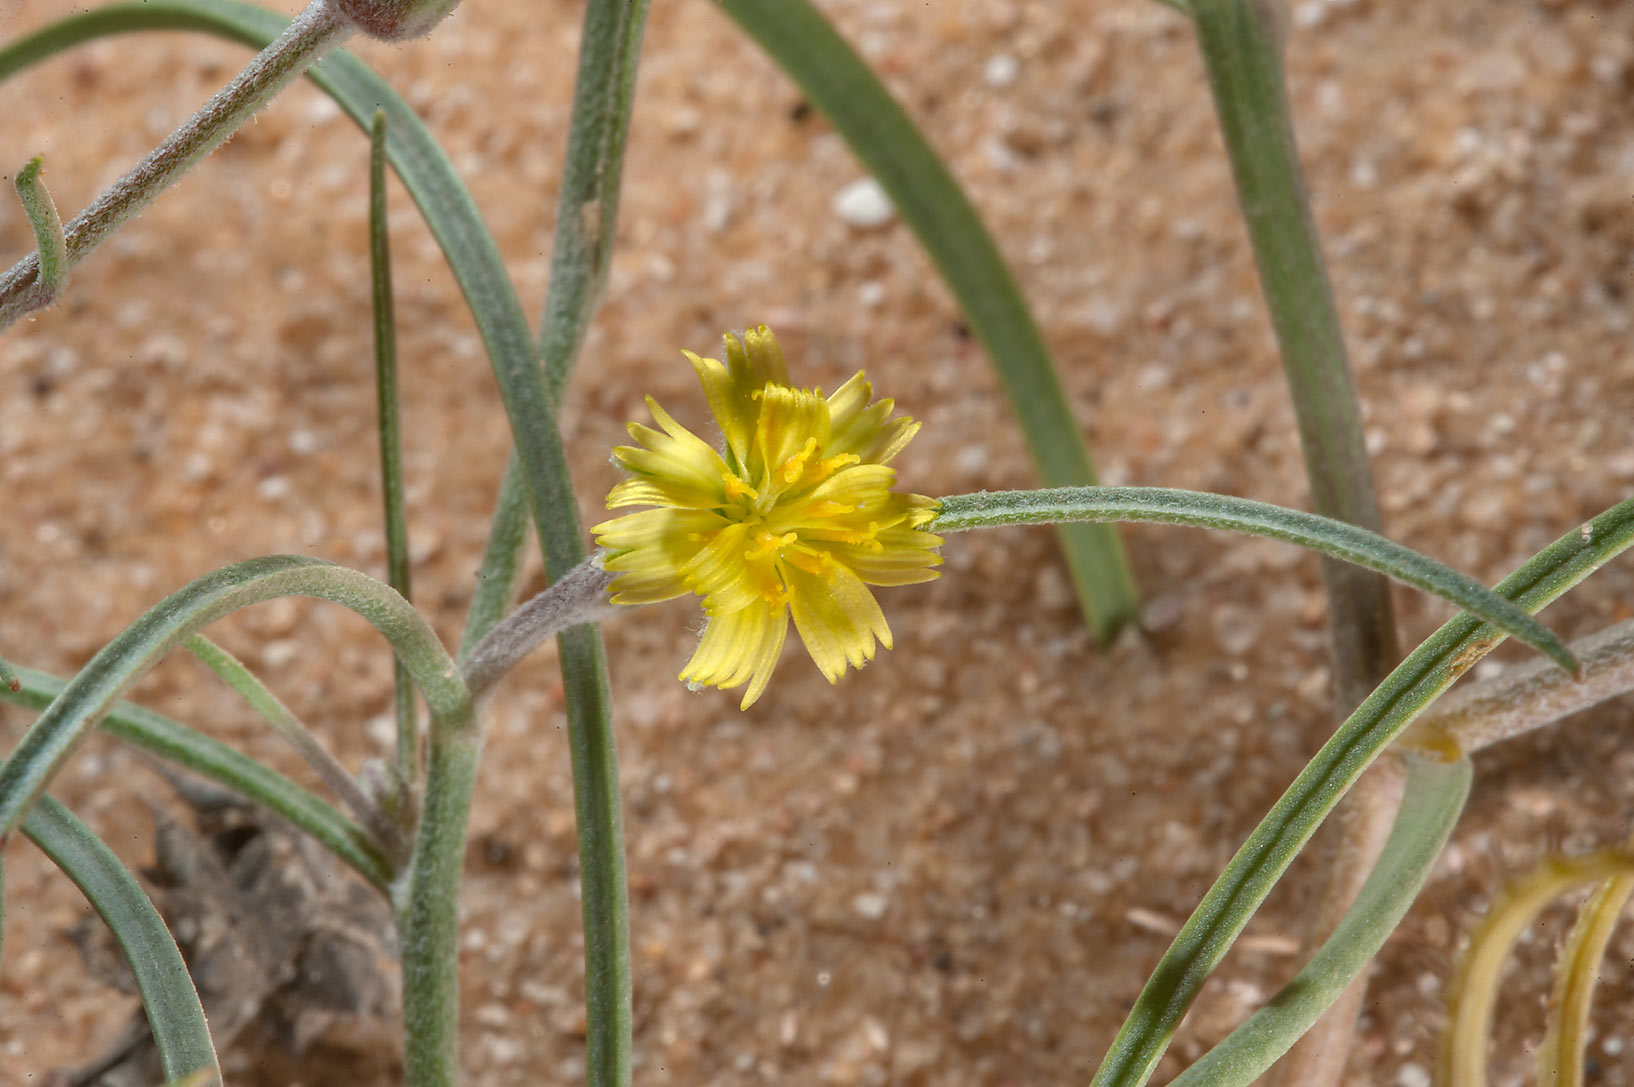 Small yellow flower of a plant Koelpinia linearis...of Khashem Al Nekhsh. Southern Qatar